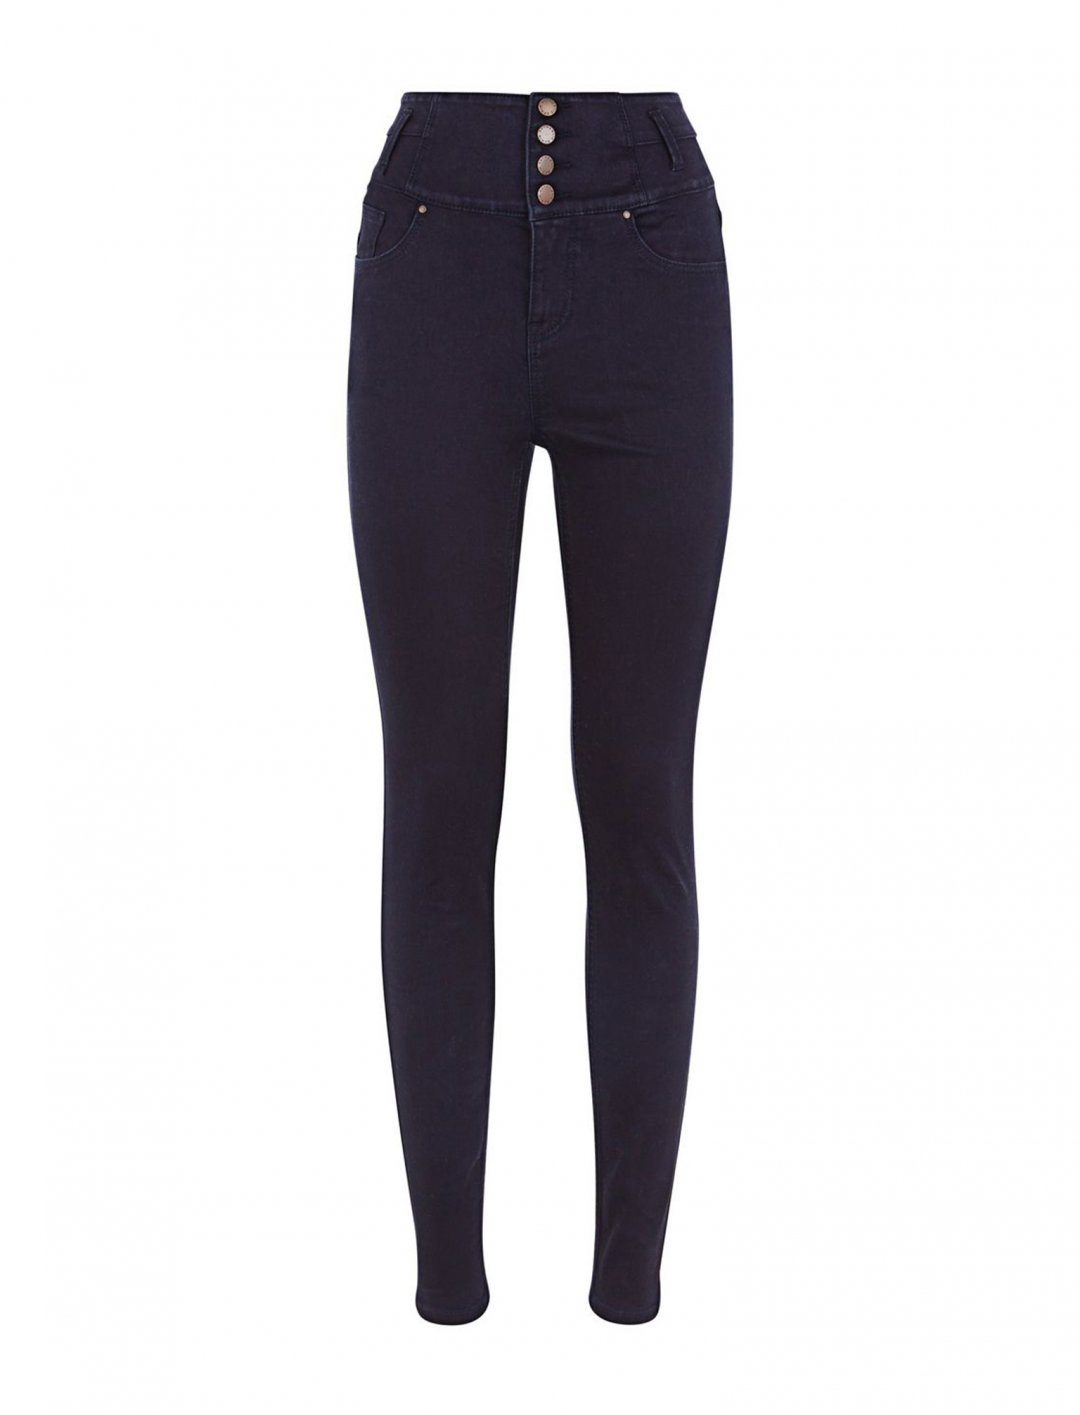 "New Look High Waist Jeans {""id"":5,""product_section_id"":1,""name"":""Clothing"",""order"":5} New Look"